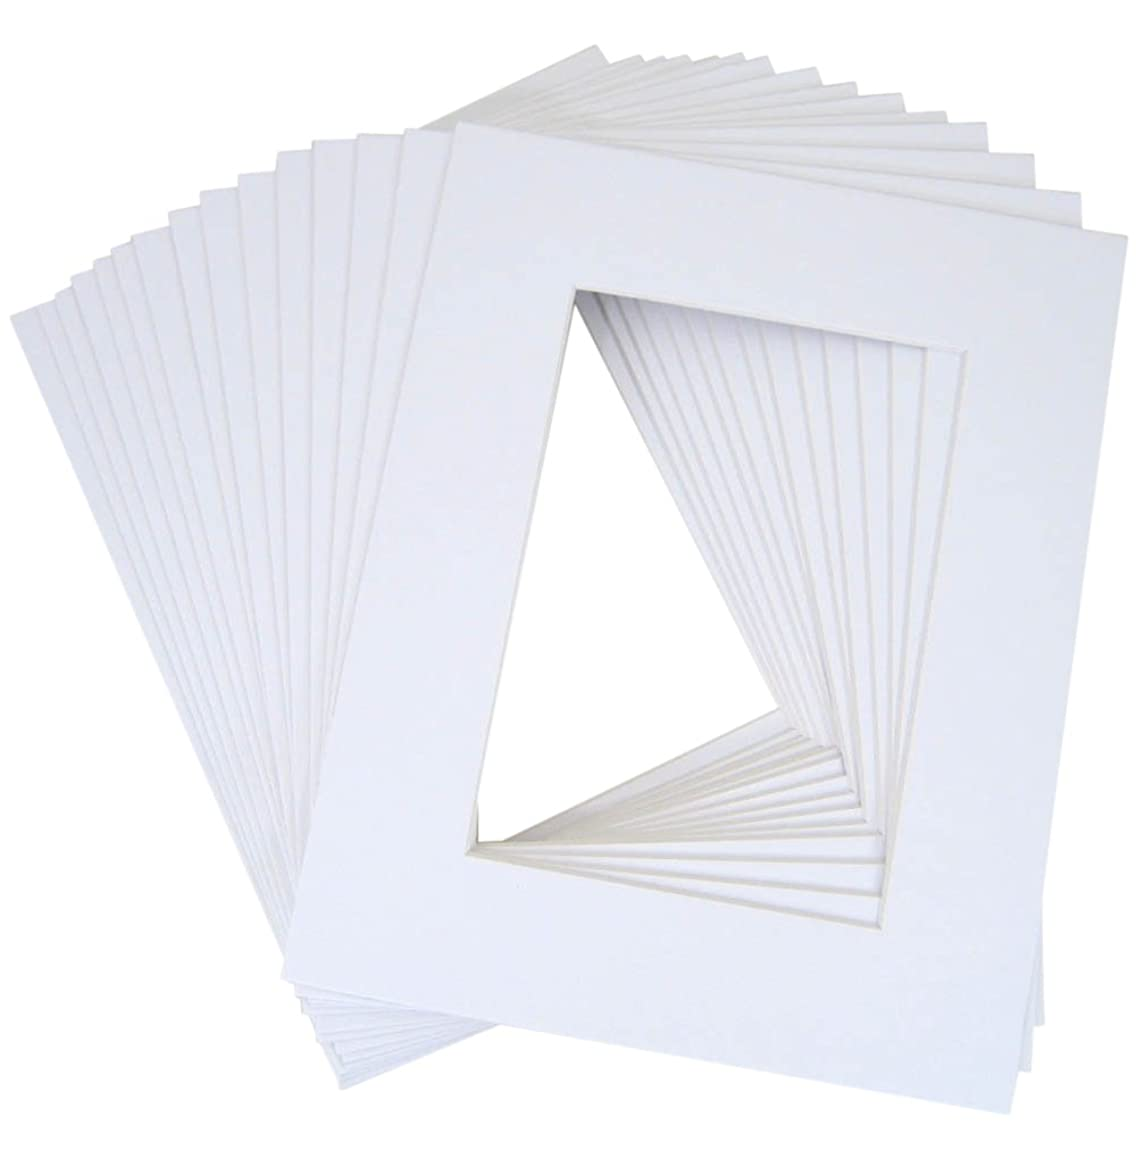 Pack of 10 16x20 White Picture Mats Mattes with White Core Bevel Cut for 11x14 Photo + Backing + Bags